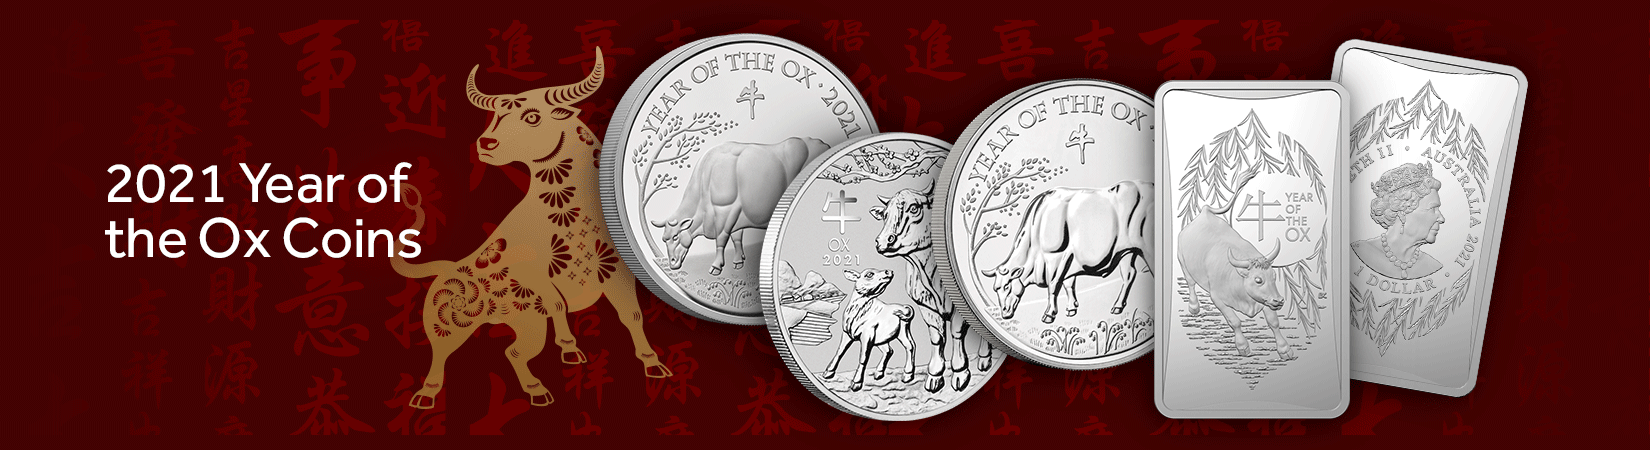 2021 Year of the Ox Coins header image featuring 2021 Year of the Ox Silver Coins from around the world with Japanese writing and a decorative ox in the background